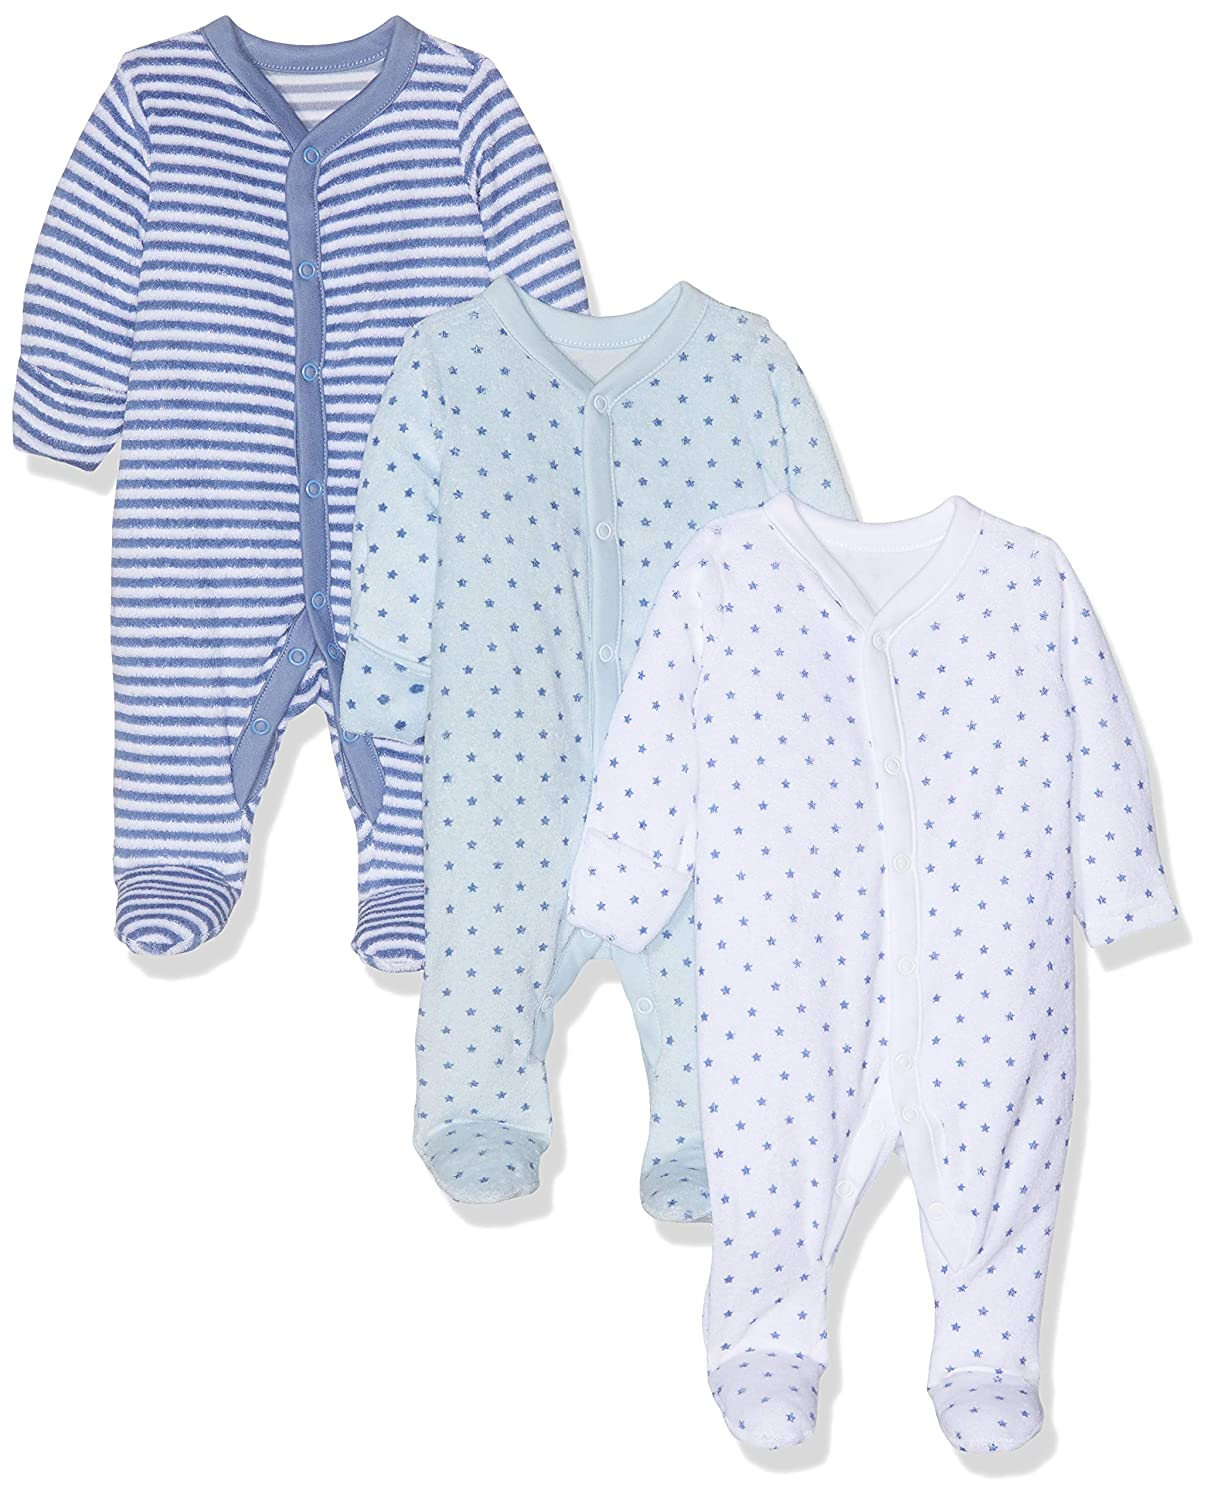 Body Mothercare Blue Towelling Sleepsuits B/éb/é gar/çon 3 Pack